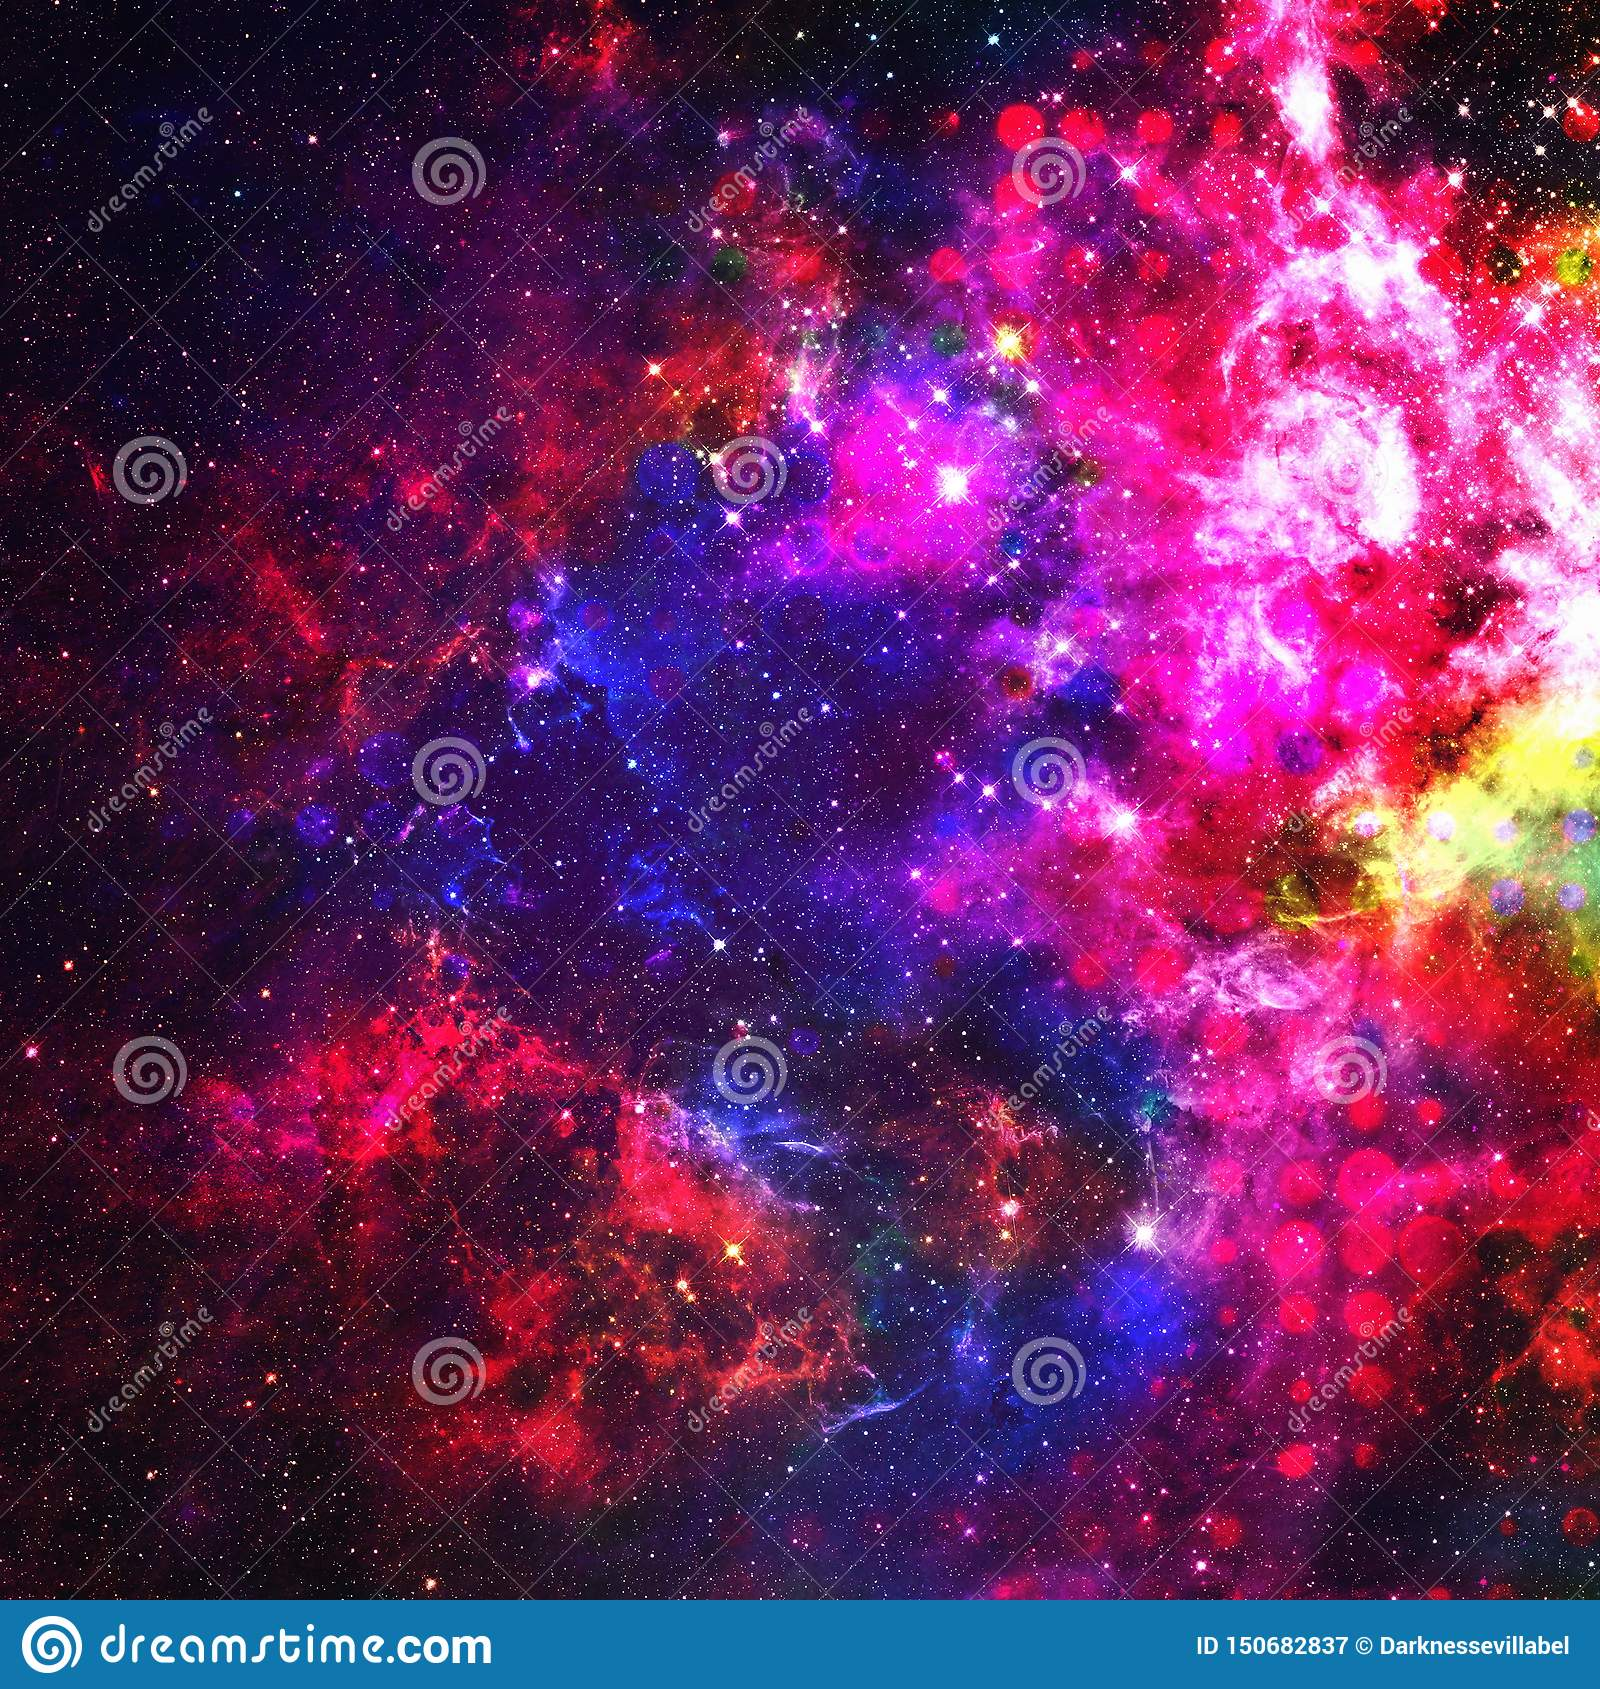 Abstract Colorful Space Background Stars Of A Planet And Galaxy In Outer Space In A Neon Pink Color Space Background And Texture Stock Illustration Illustration Of Multicolor Paint 150682837